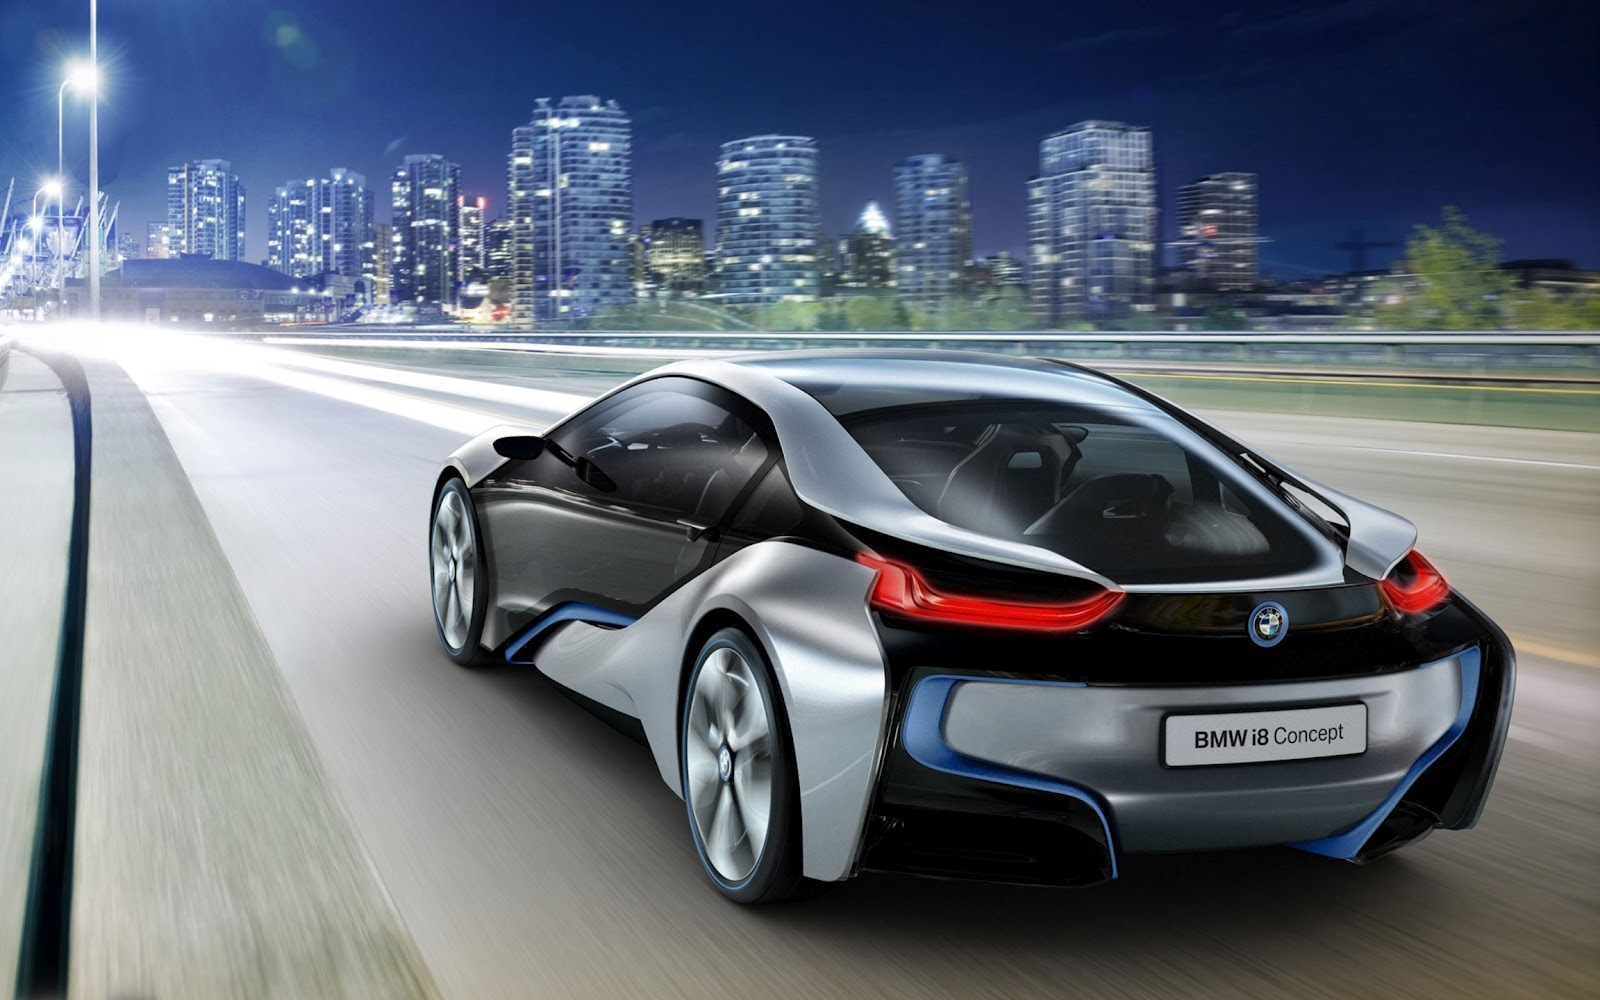 Bmw I8 Concept Car Hd Wallpaper Hd Car Wallpapers